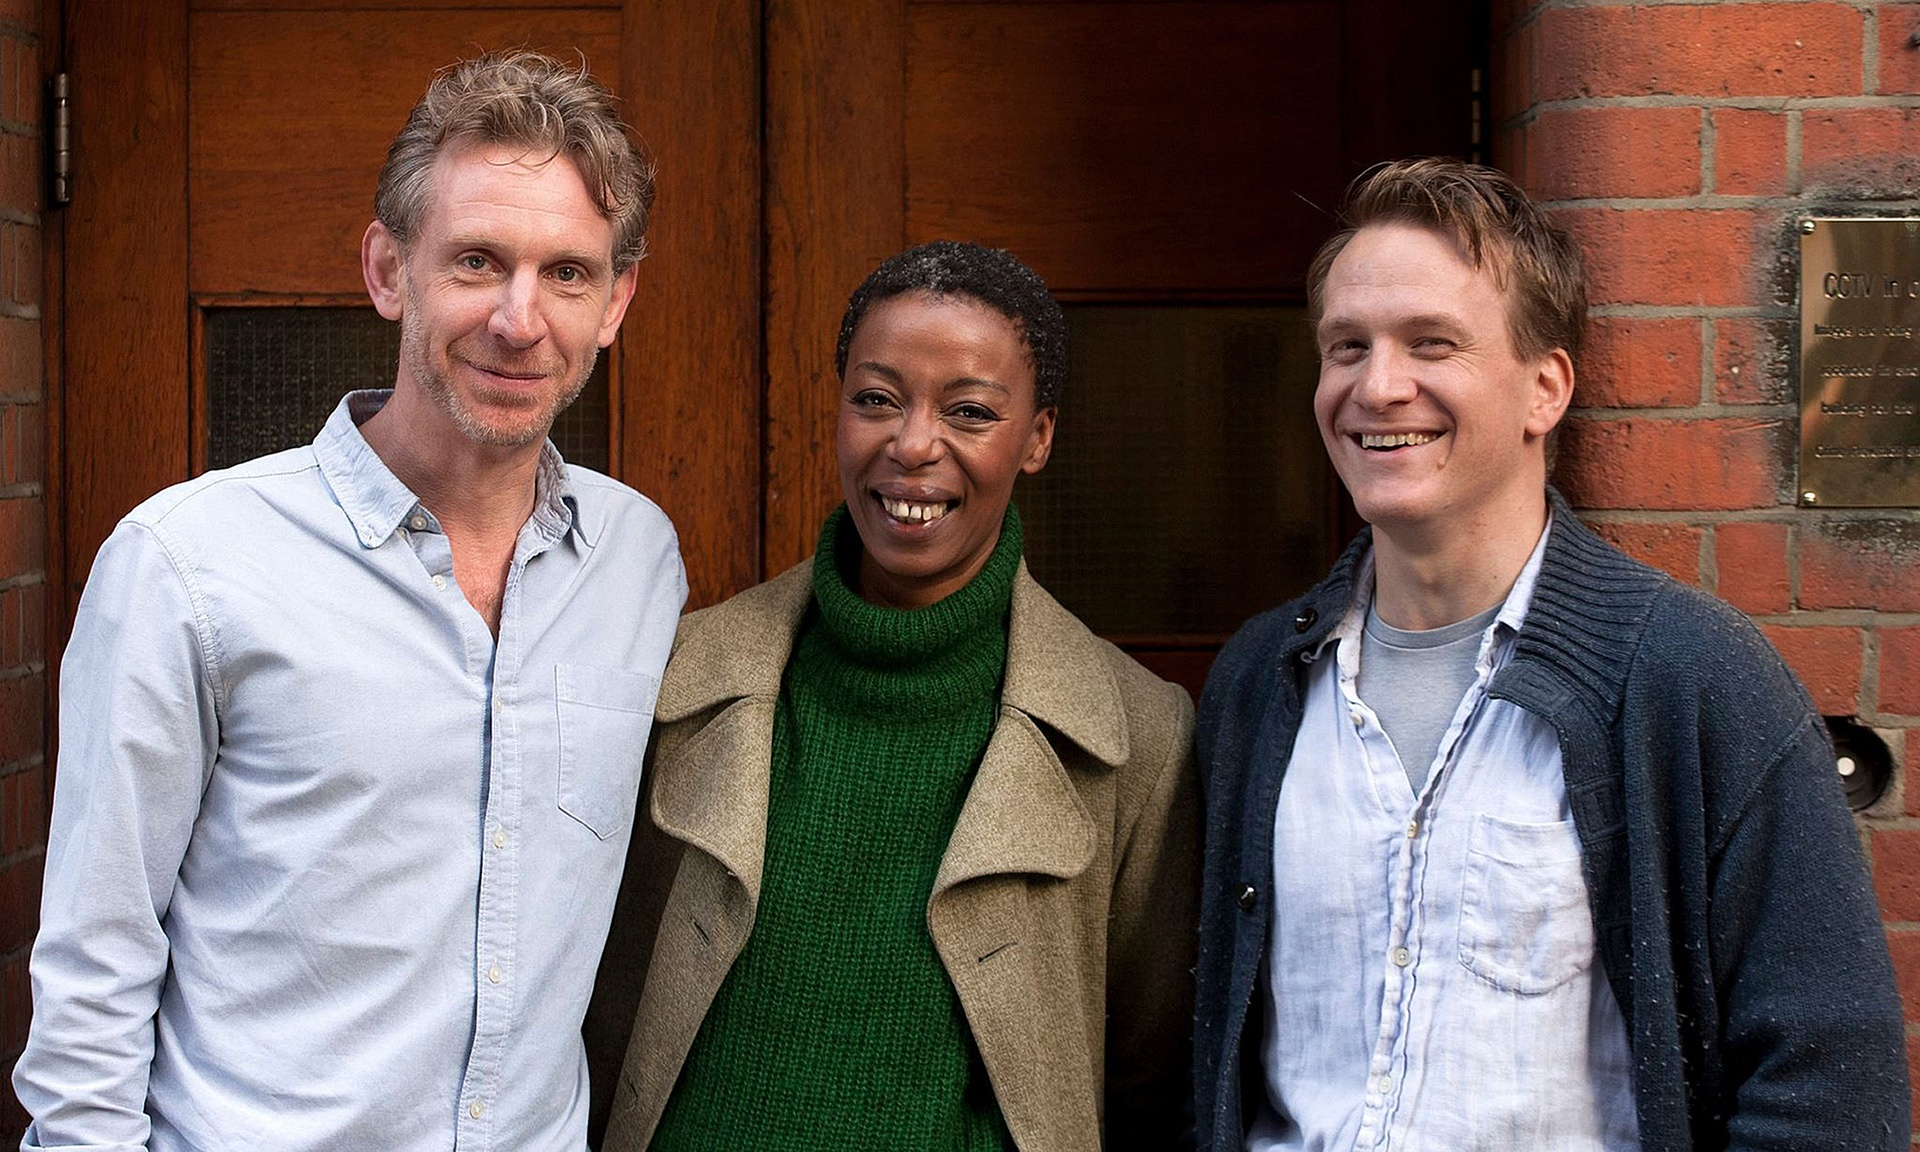 Paul Thornley, Noma Dumezweni and Jamie Parker que interpretarão Ron, Hermione e Harry em Harry Potter e a Criança Amaldiçoada/Foto: Handout/PA